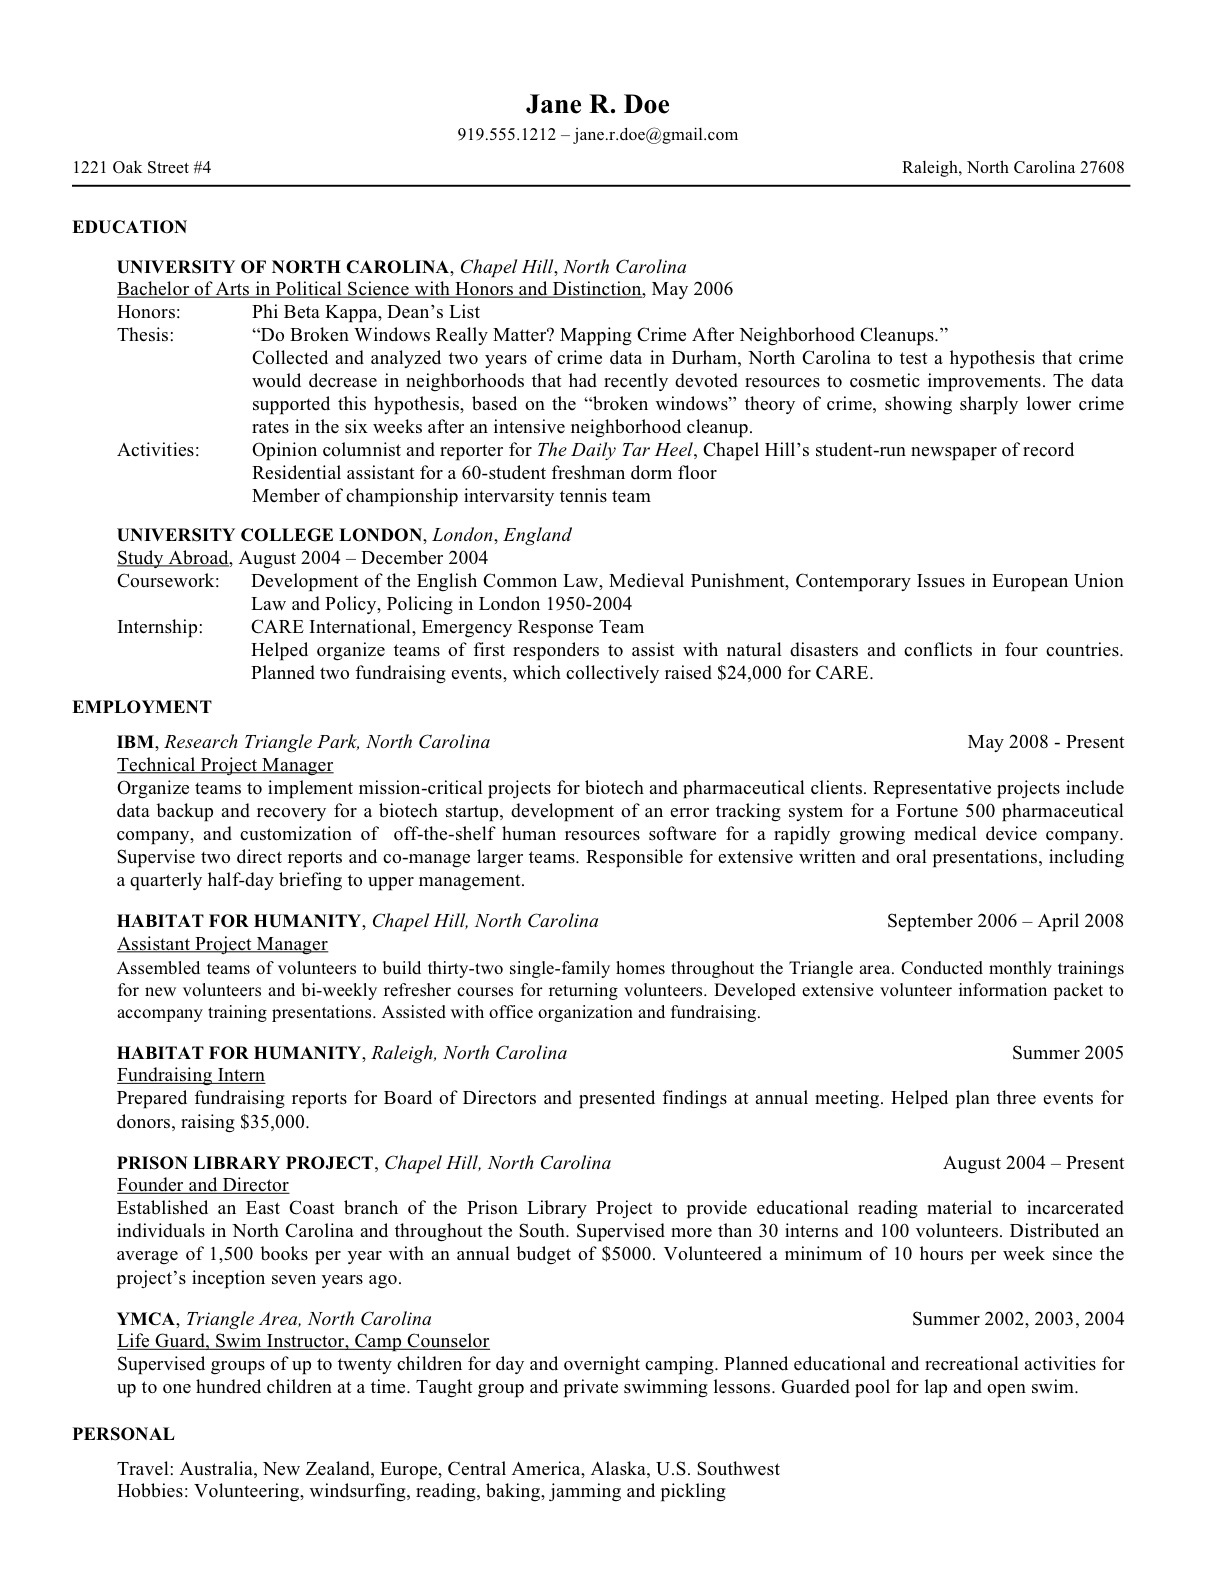 how to include thesis in resume samples